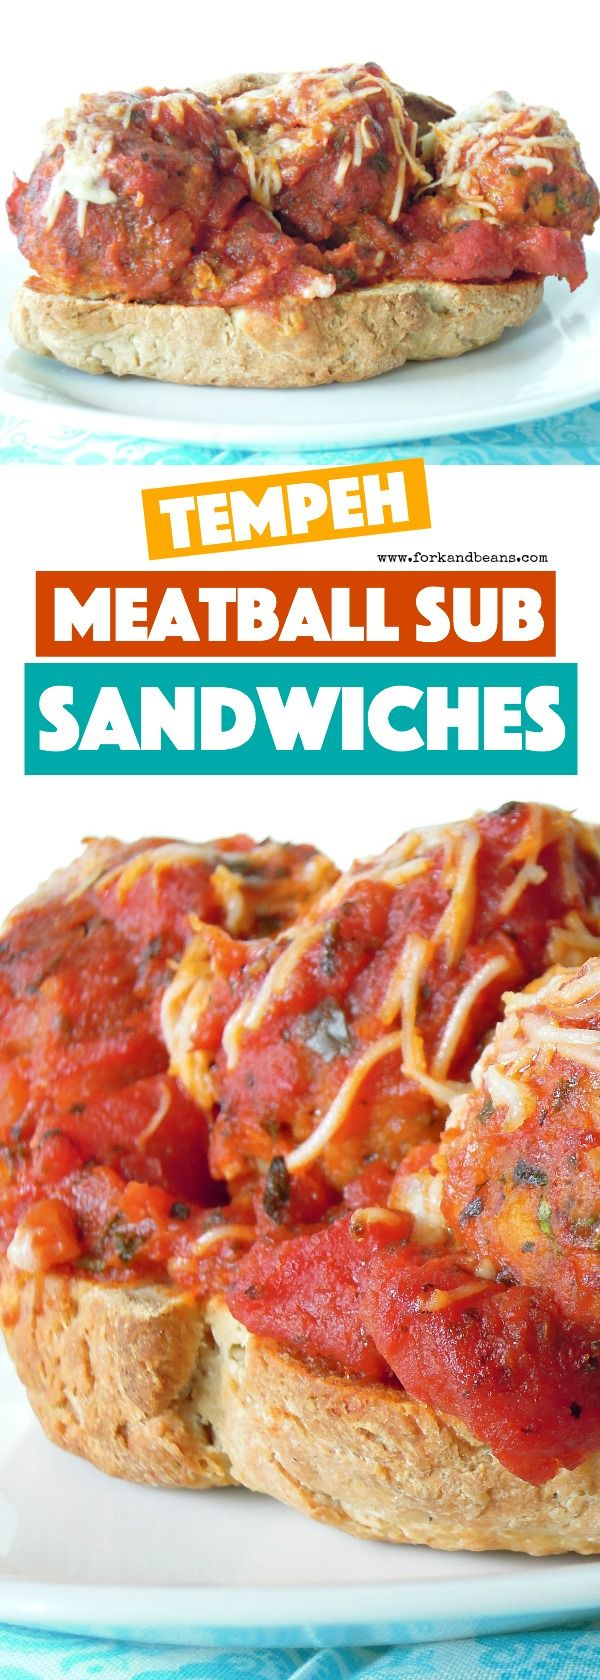 Ground up tempeh, rolled into balls and smothered with marinara sauce make these Vegan Meatball Sub Sandwiches a delicious dinner option!